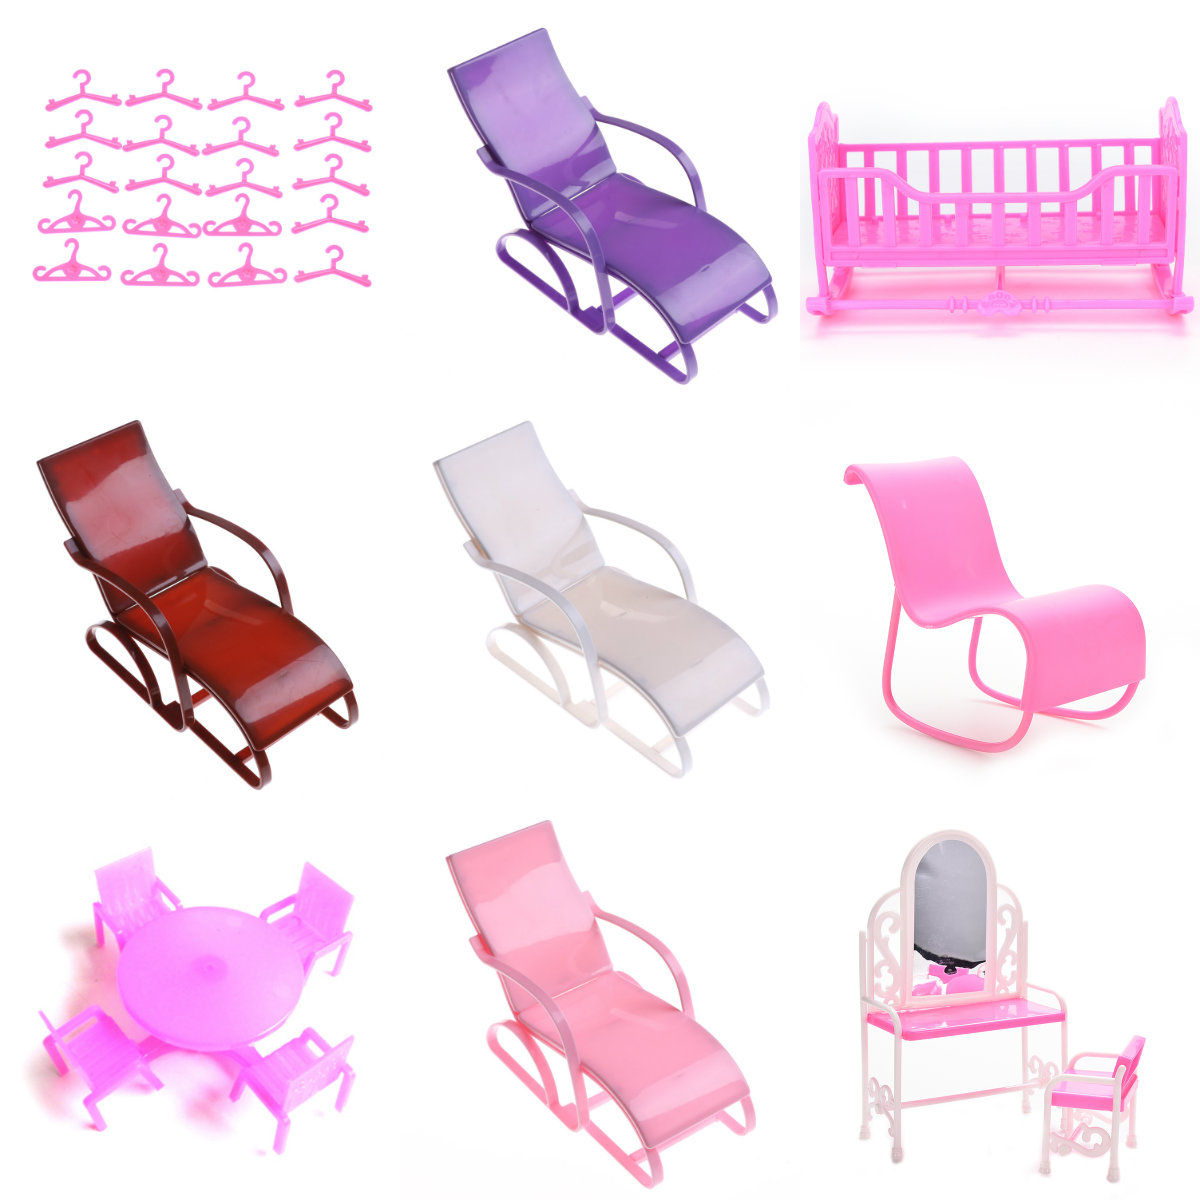 1SetMix Doll Accessories Shoes Rack Playhouse Furniture Mini Swing Play Toy For Barbie Doll Kelly Doll Kids Gift DIY Toys